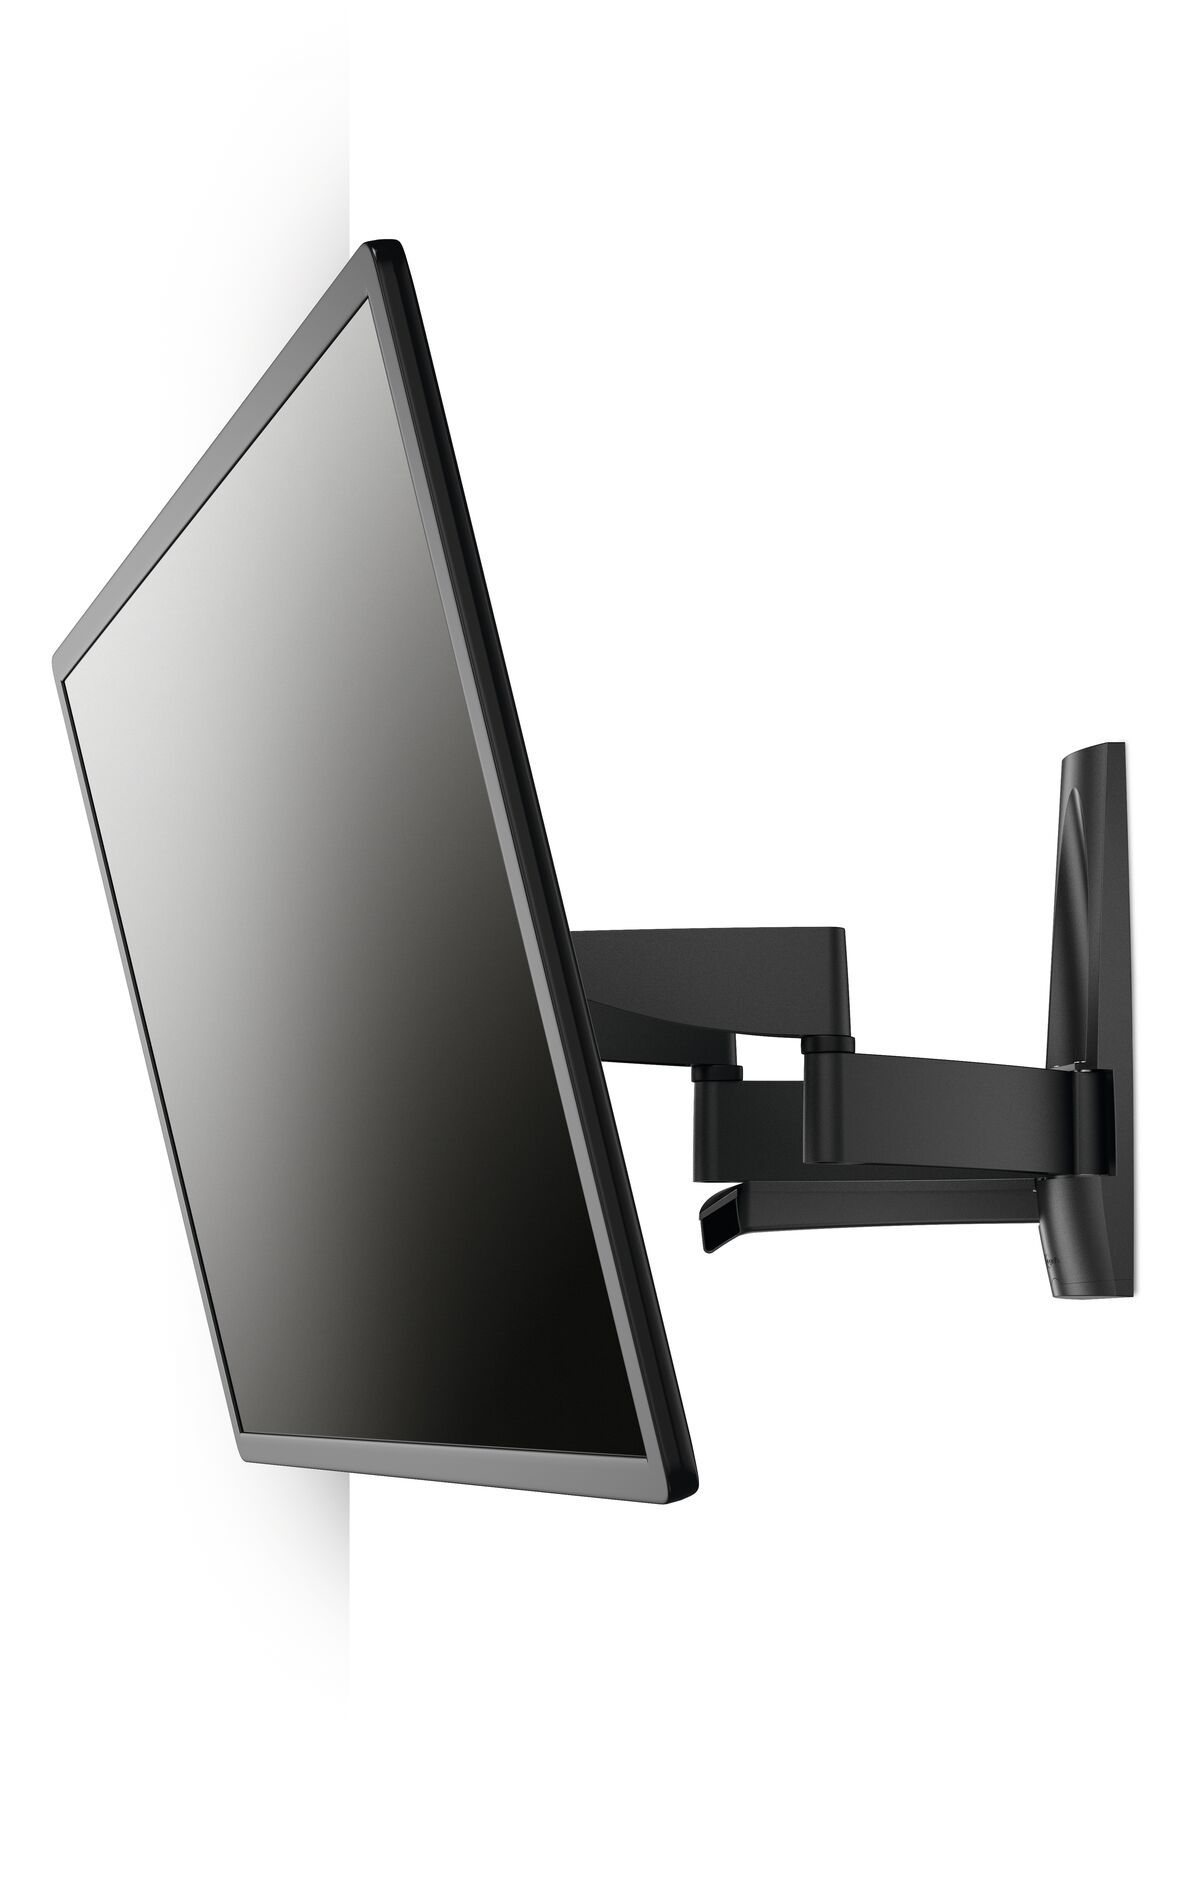 Vogel's WALL 2350 Full-Motion TV Wall Mount - Suitable for 40 up to 65 inch TVs - Motion (up to 120°) - Tilt up to 15° - White wall